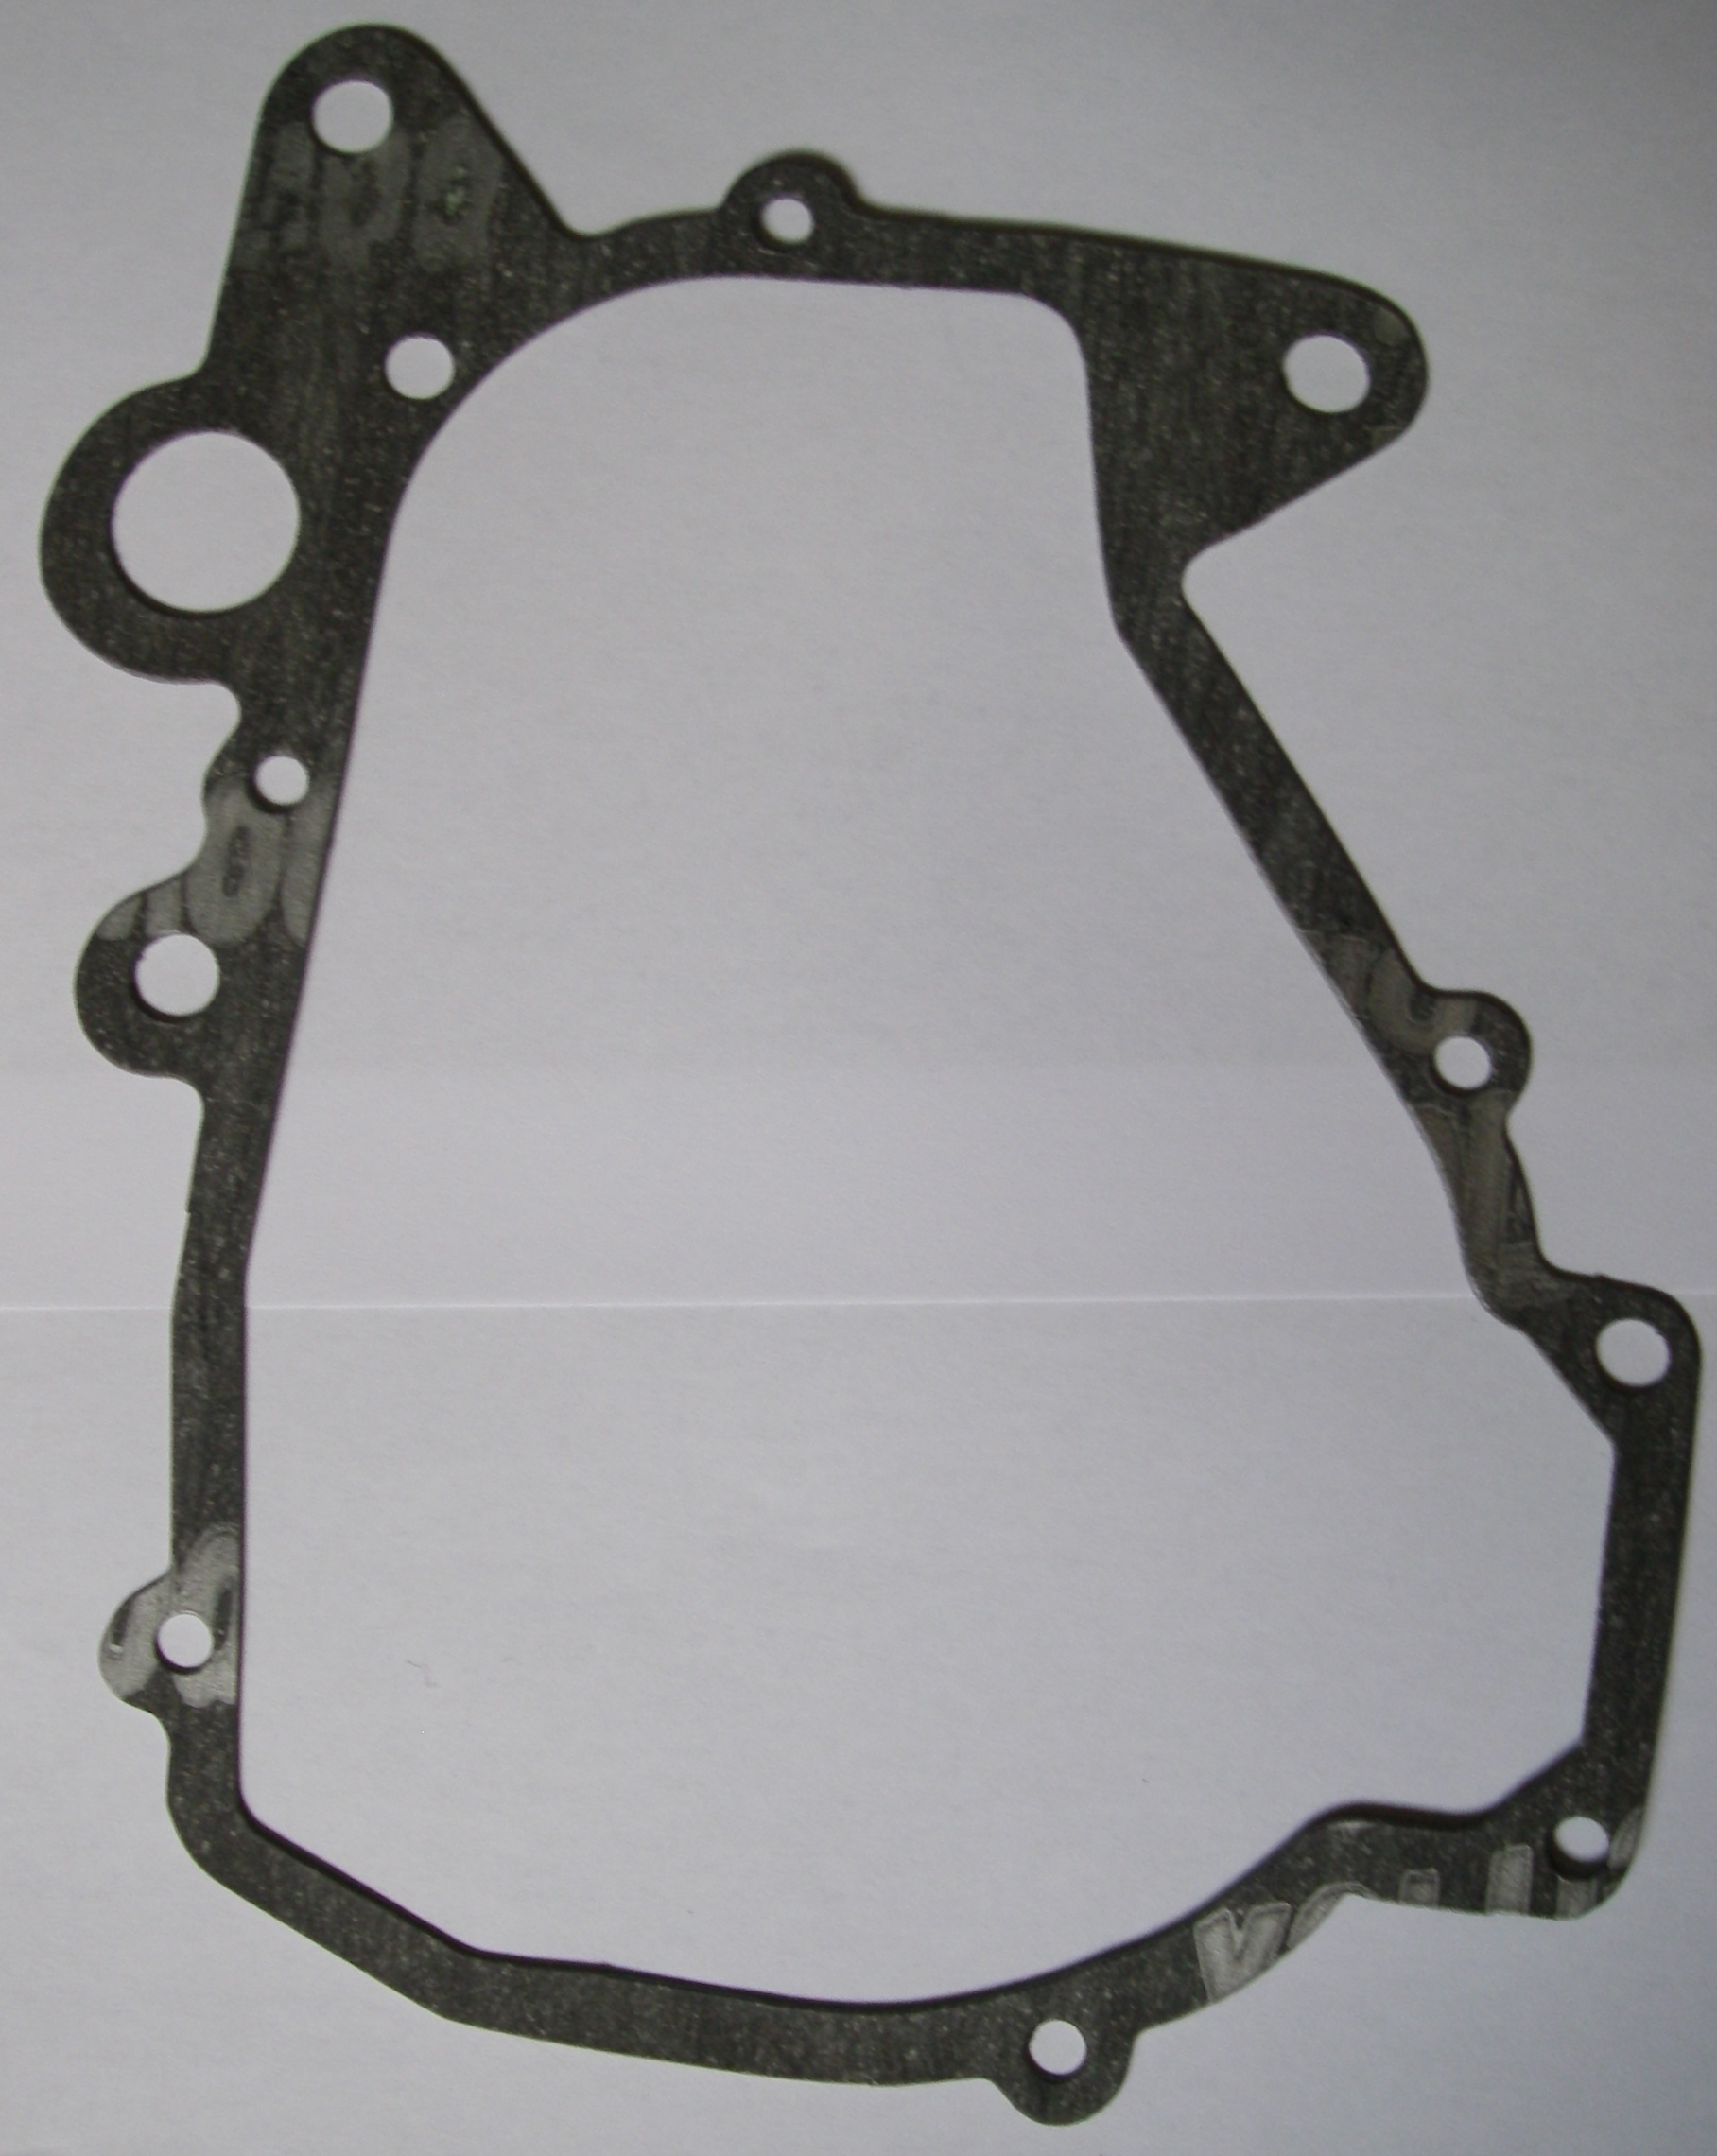 <b>Lister LT1/LV1 End Cover Gasket</b>